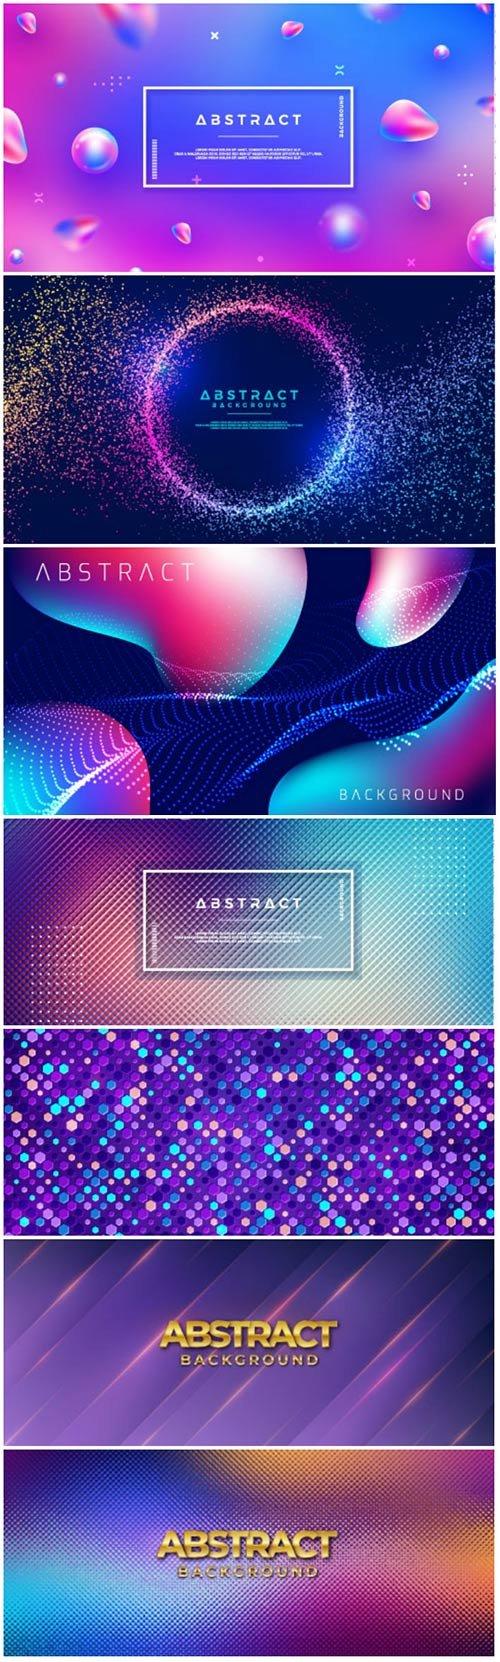 Colorful background with 3D style